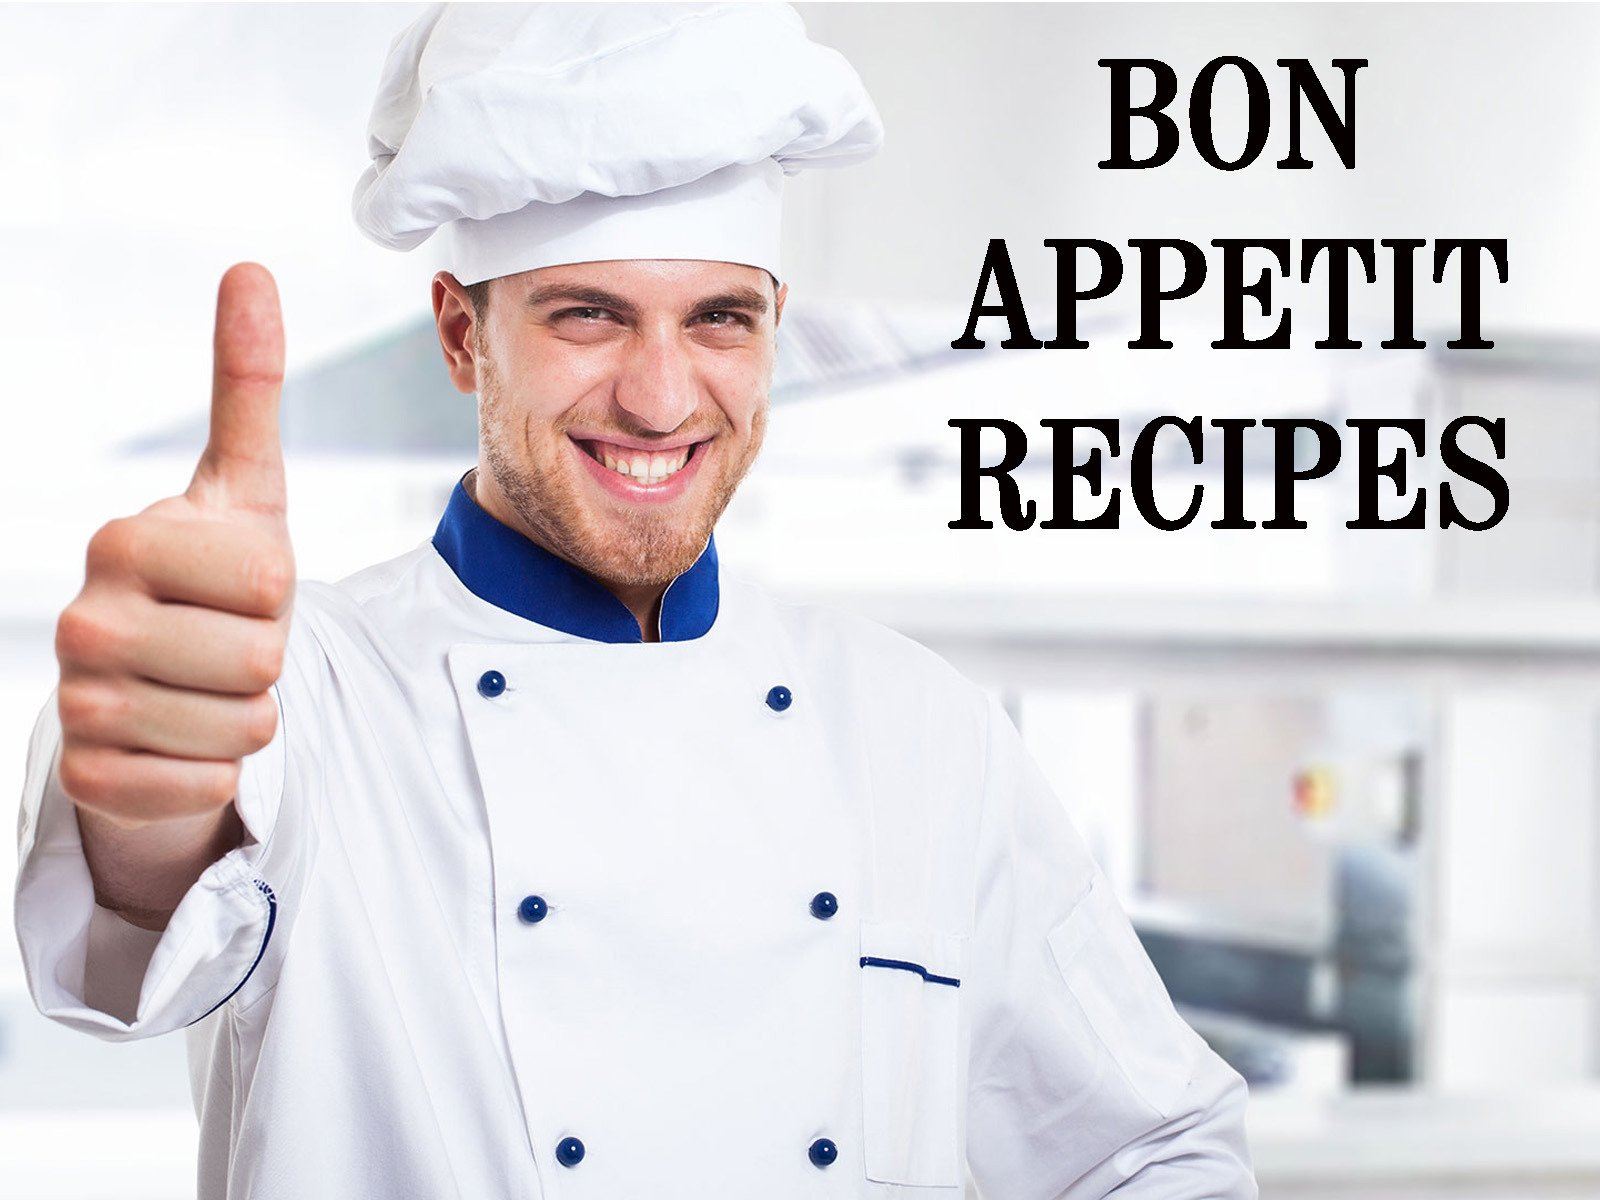 Bon Appetit recipes - Season 1